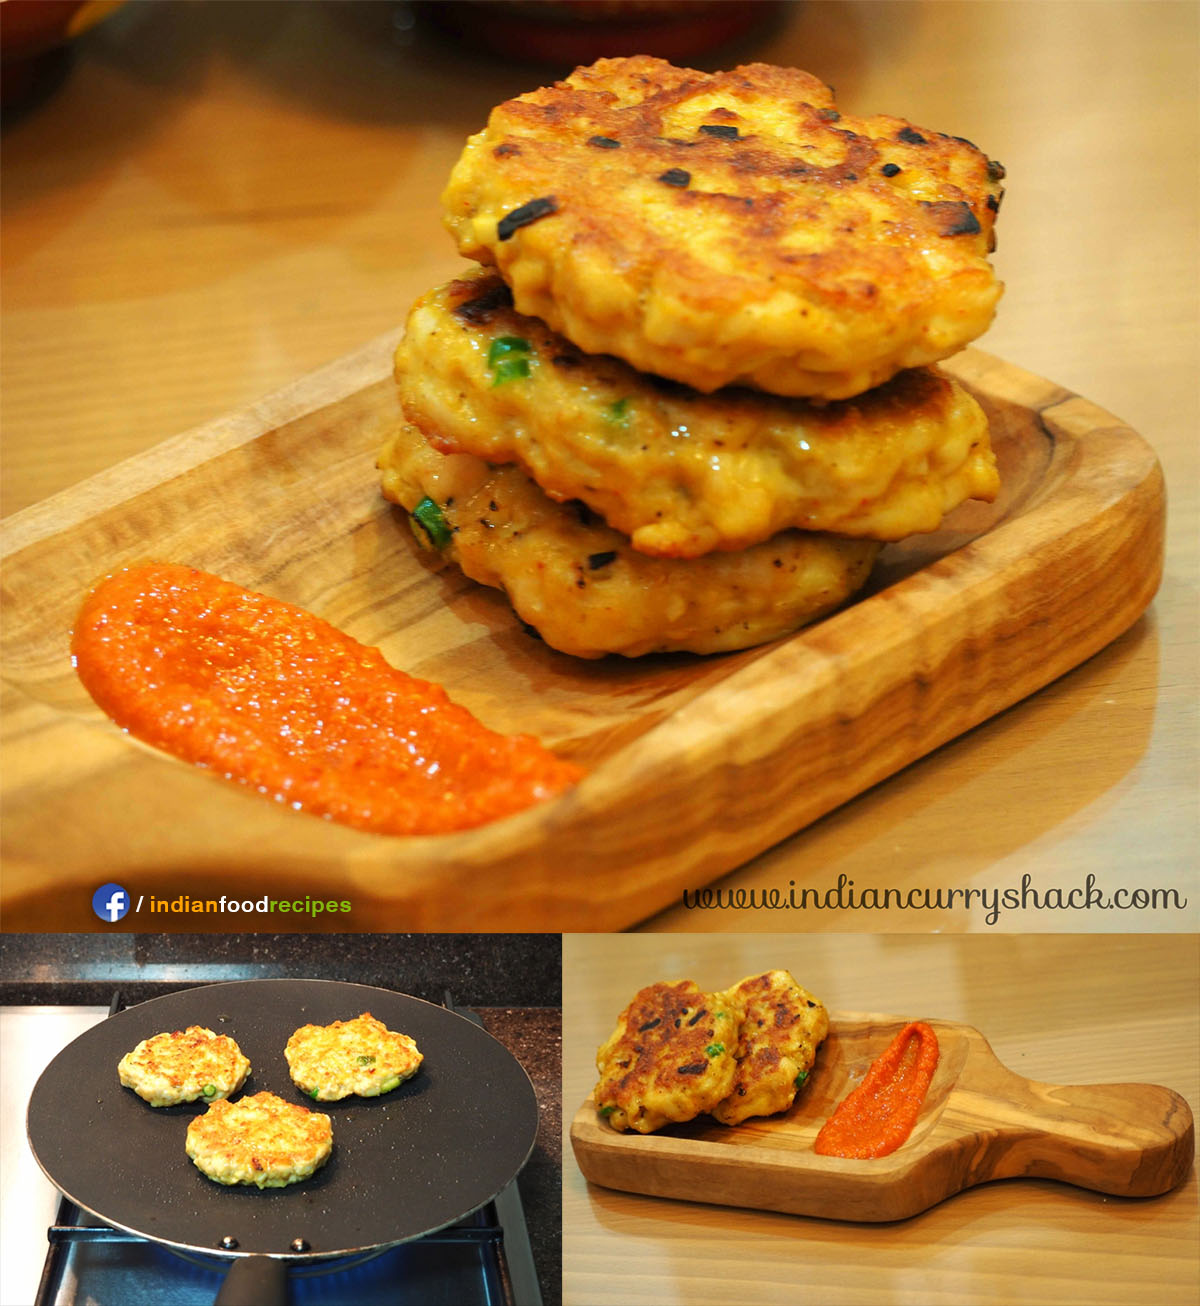 Chicken Ki Tikki (Spiced Chicken Patty) recipe step by step